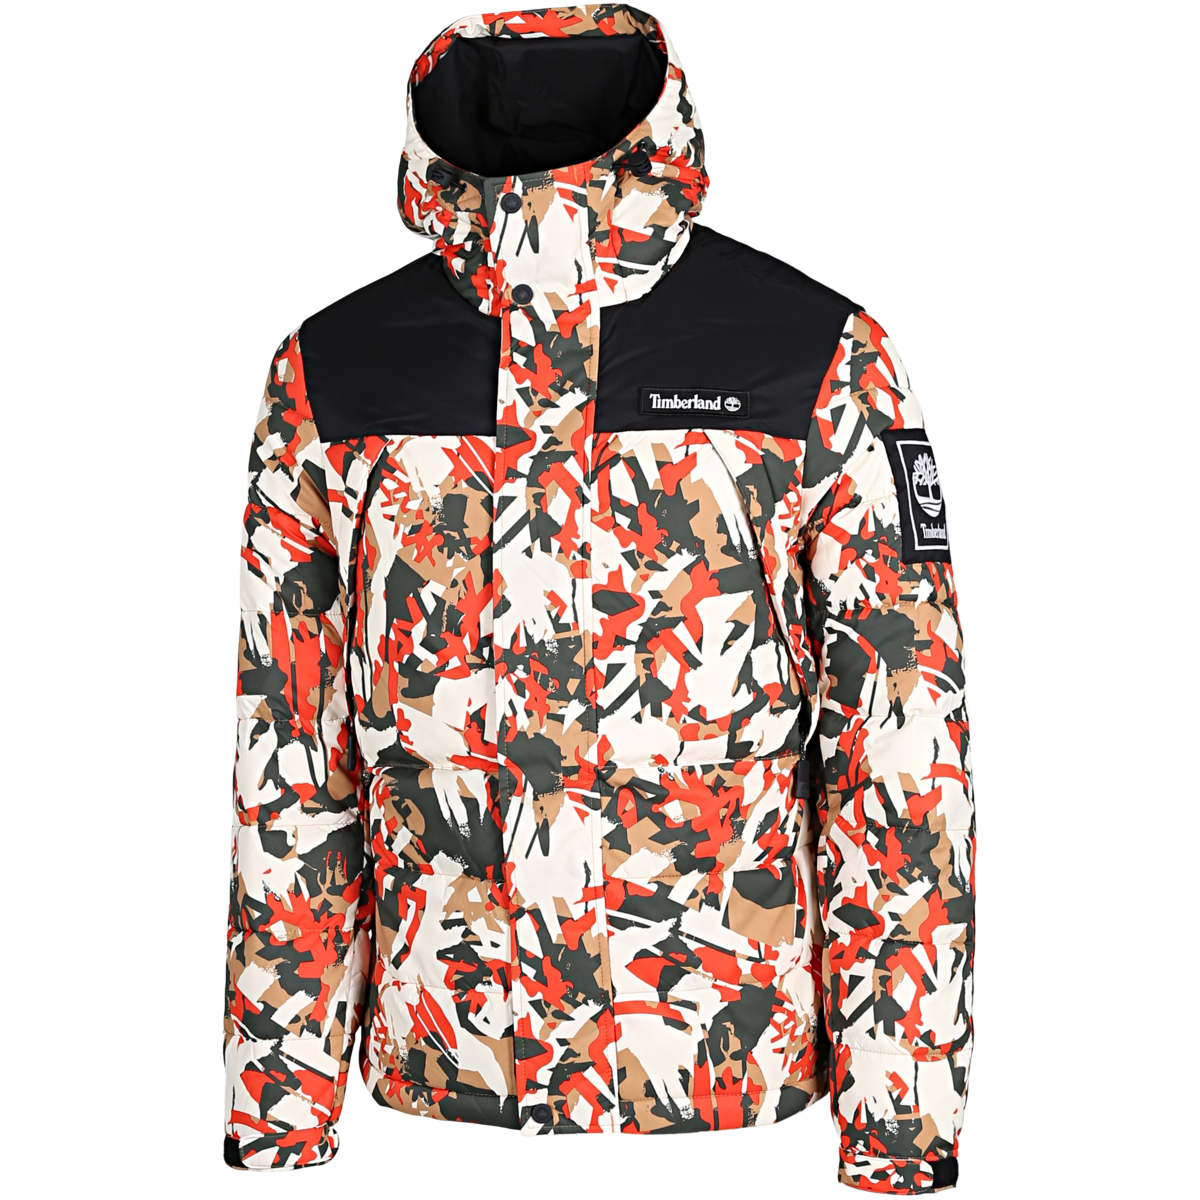 Timberland - Camo Puffer Jacket - Multicolor - Herre